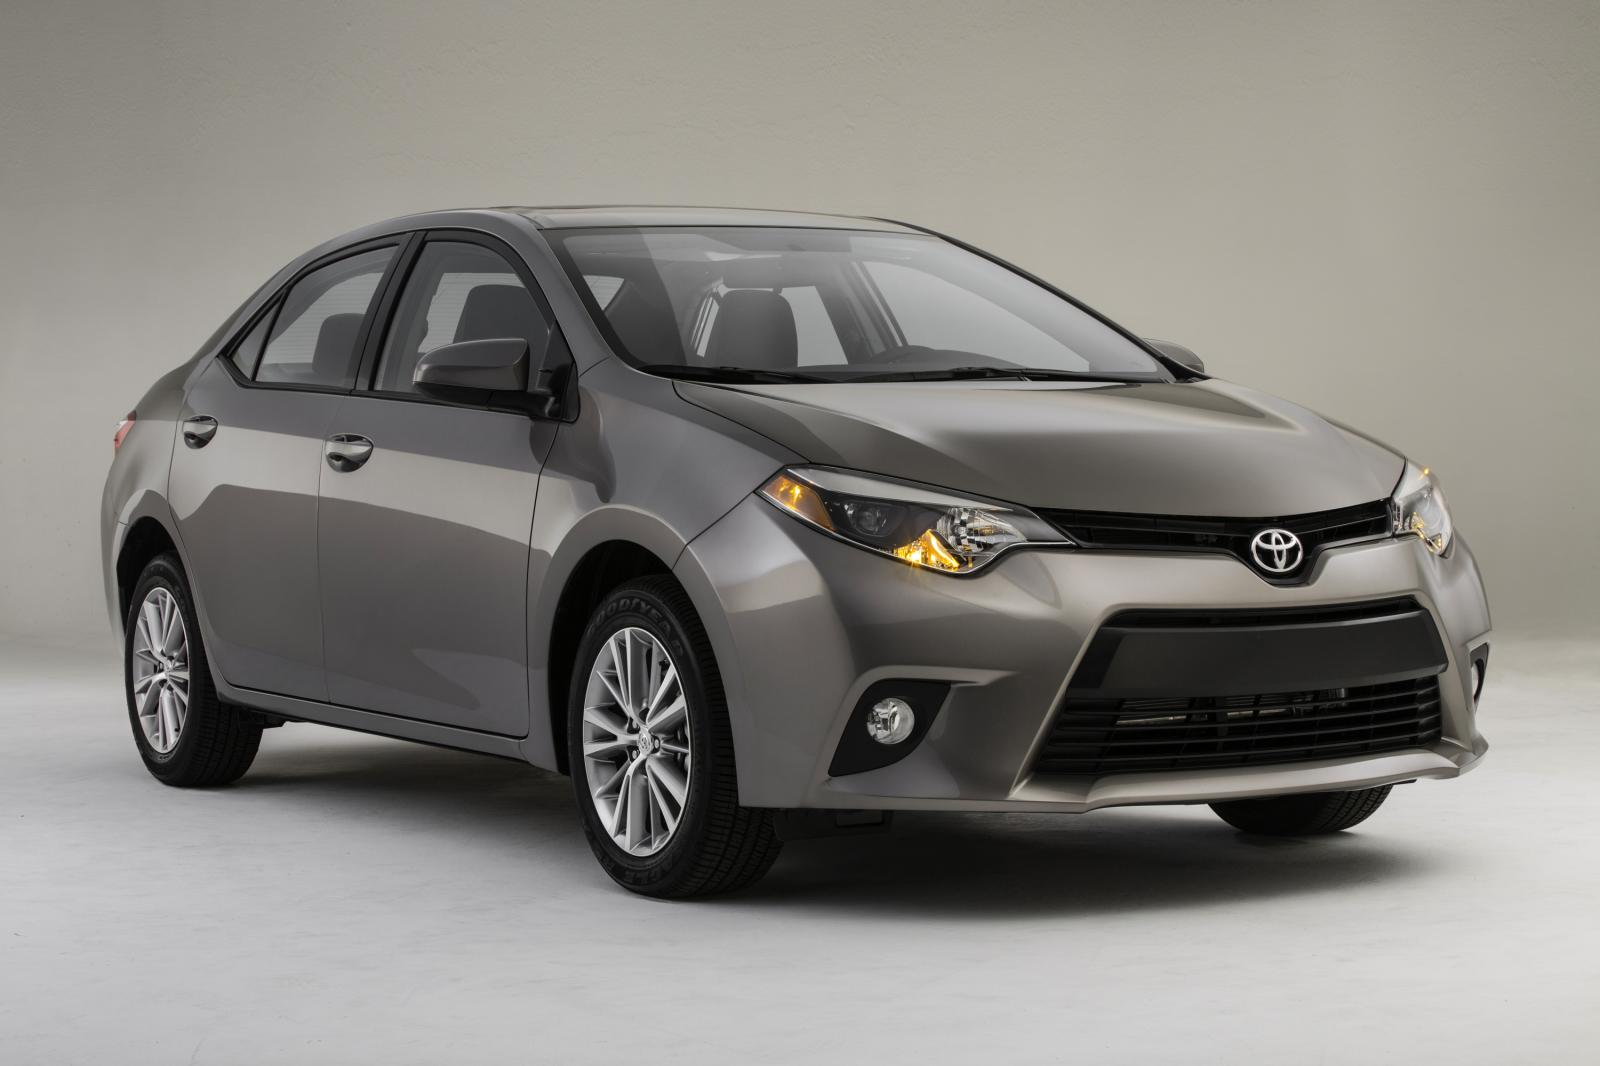 2014 toyota corolla sedan us version. Black Bedroom Furniture Sets. Home Design Ideas